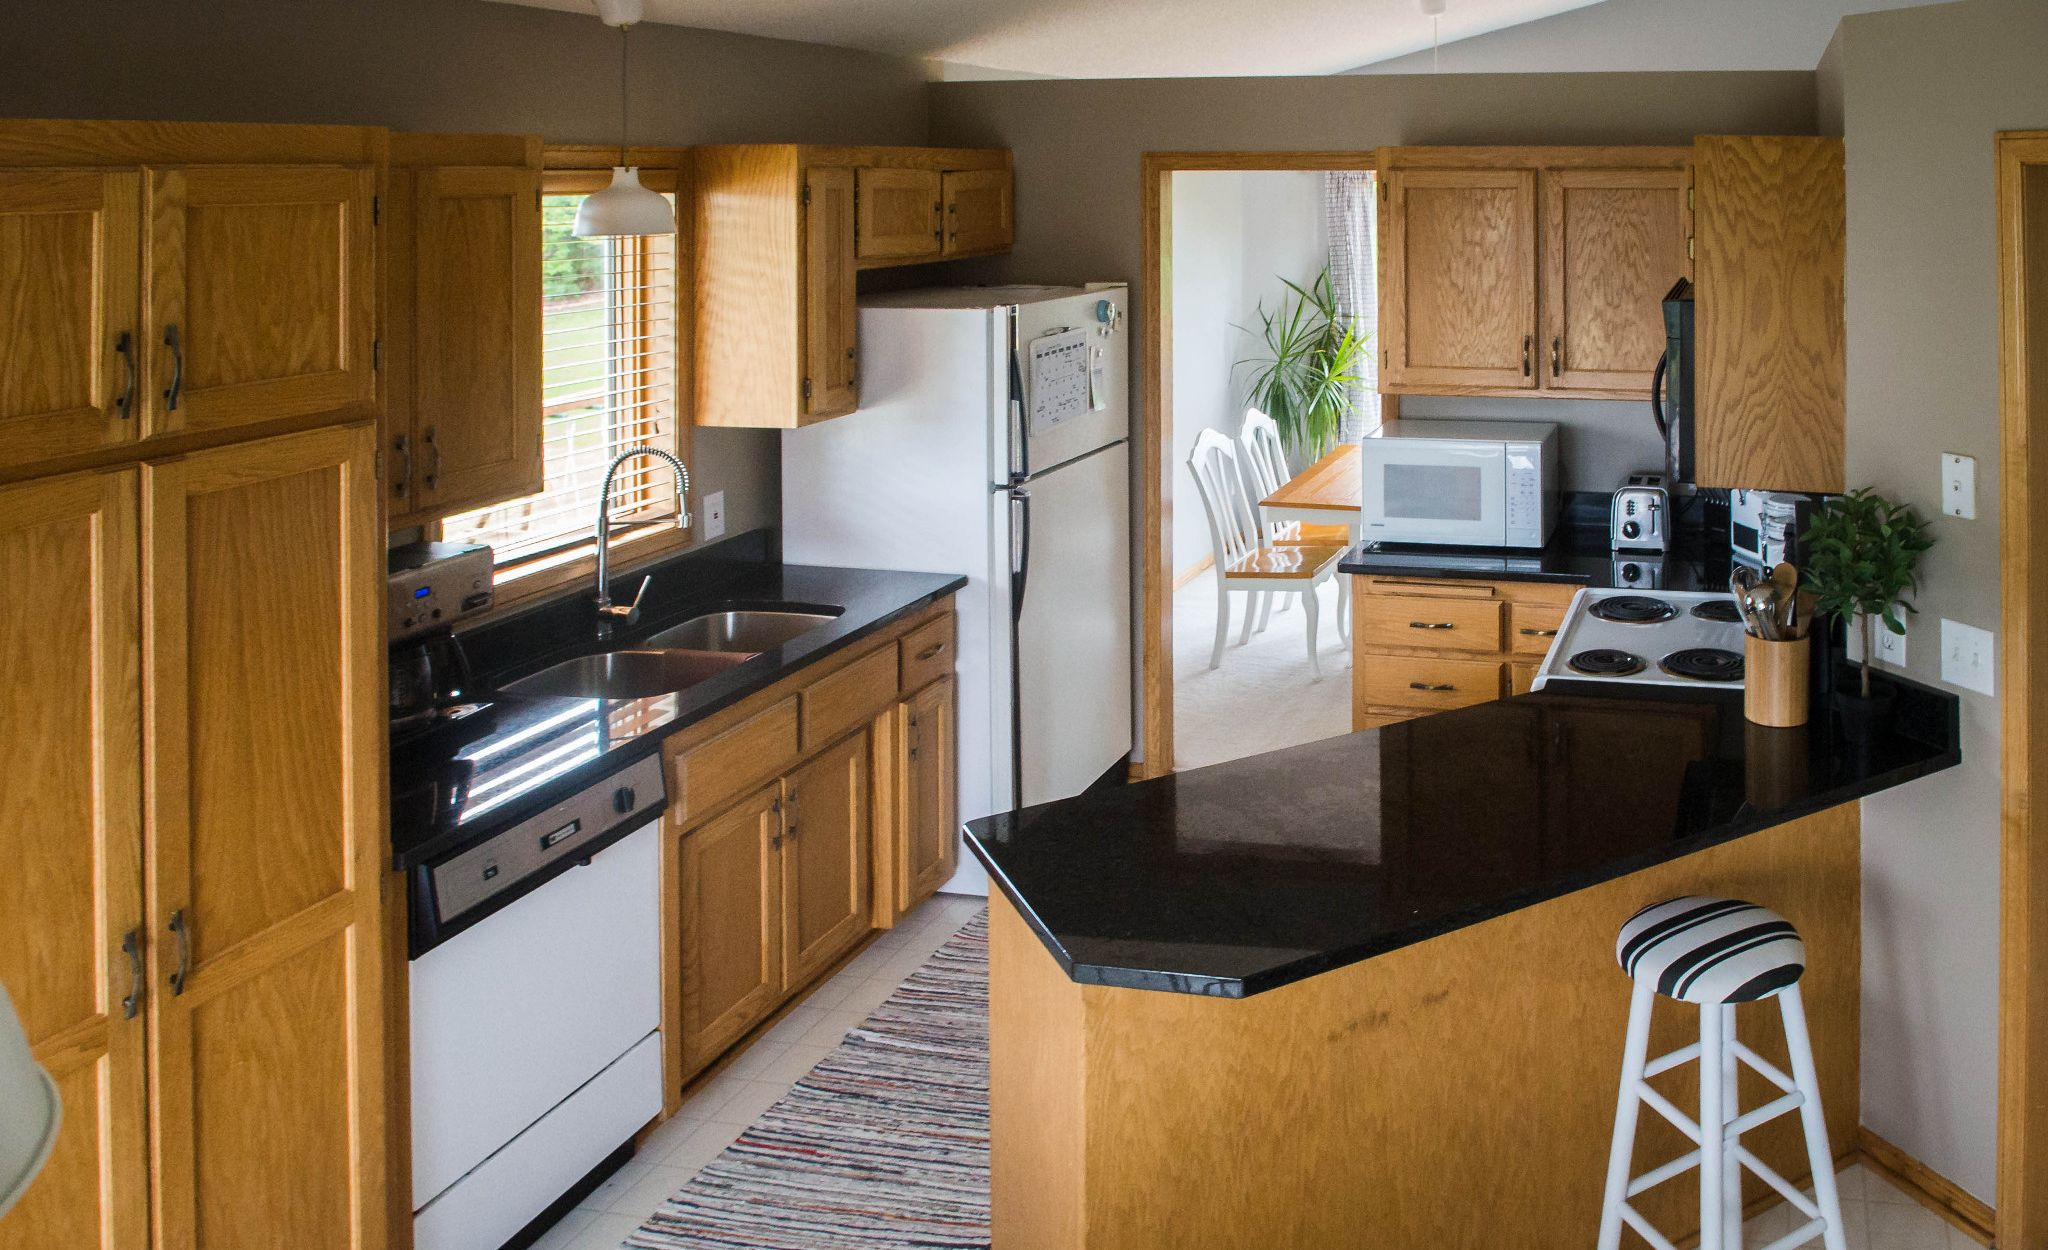 Outdated kitchen before image.